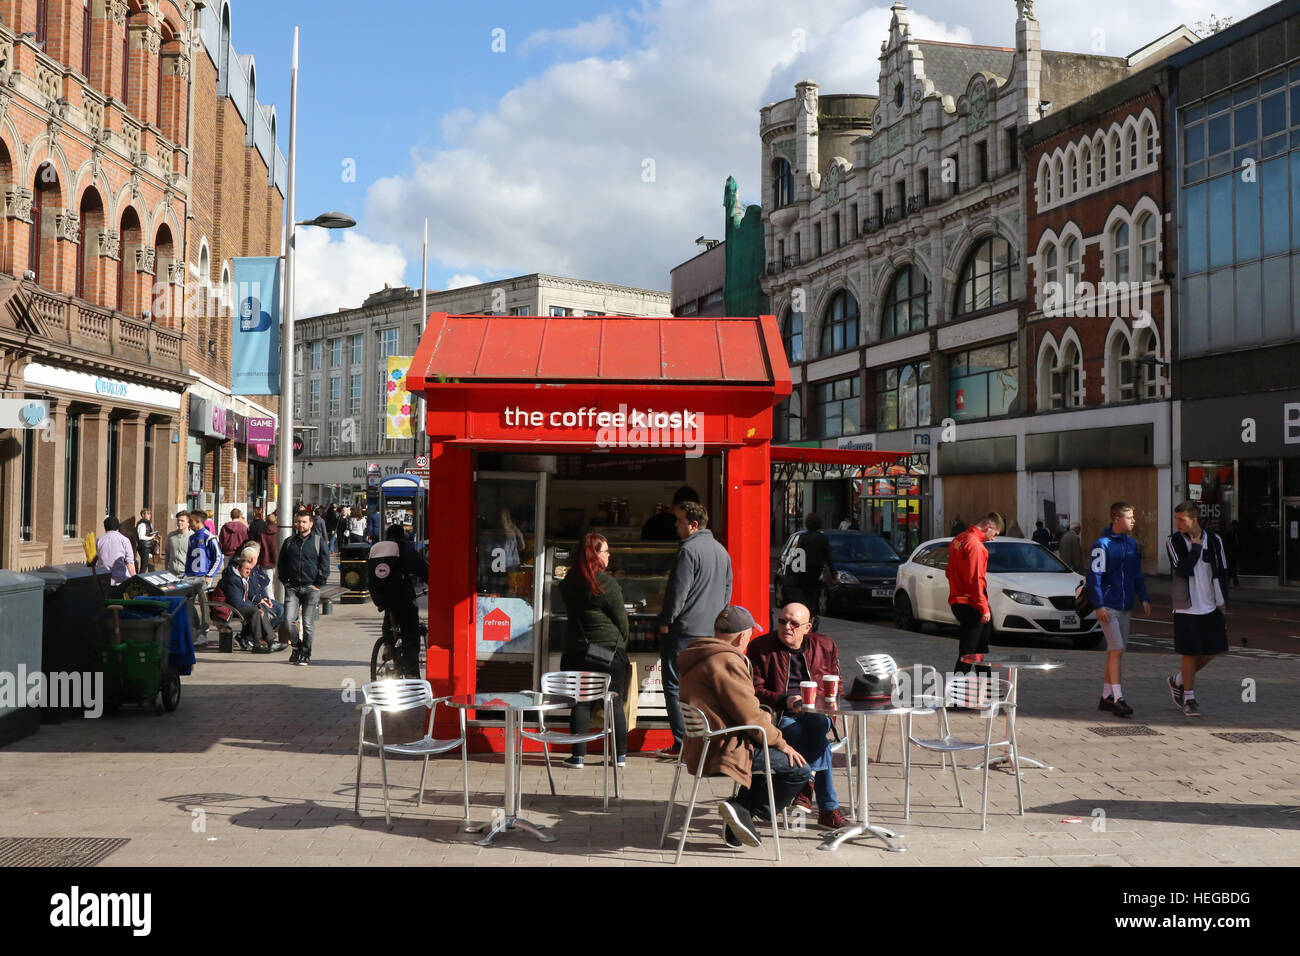 People at coffee kiosk in Castle Place, Belfast, Northern Ireland. - Stock Image